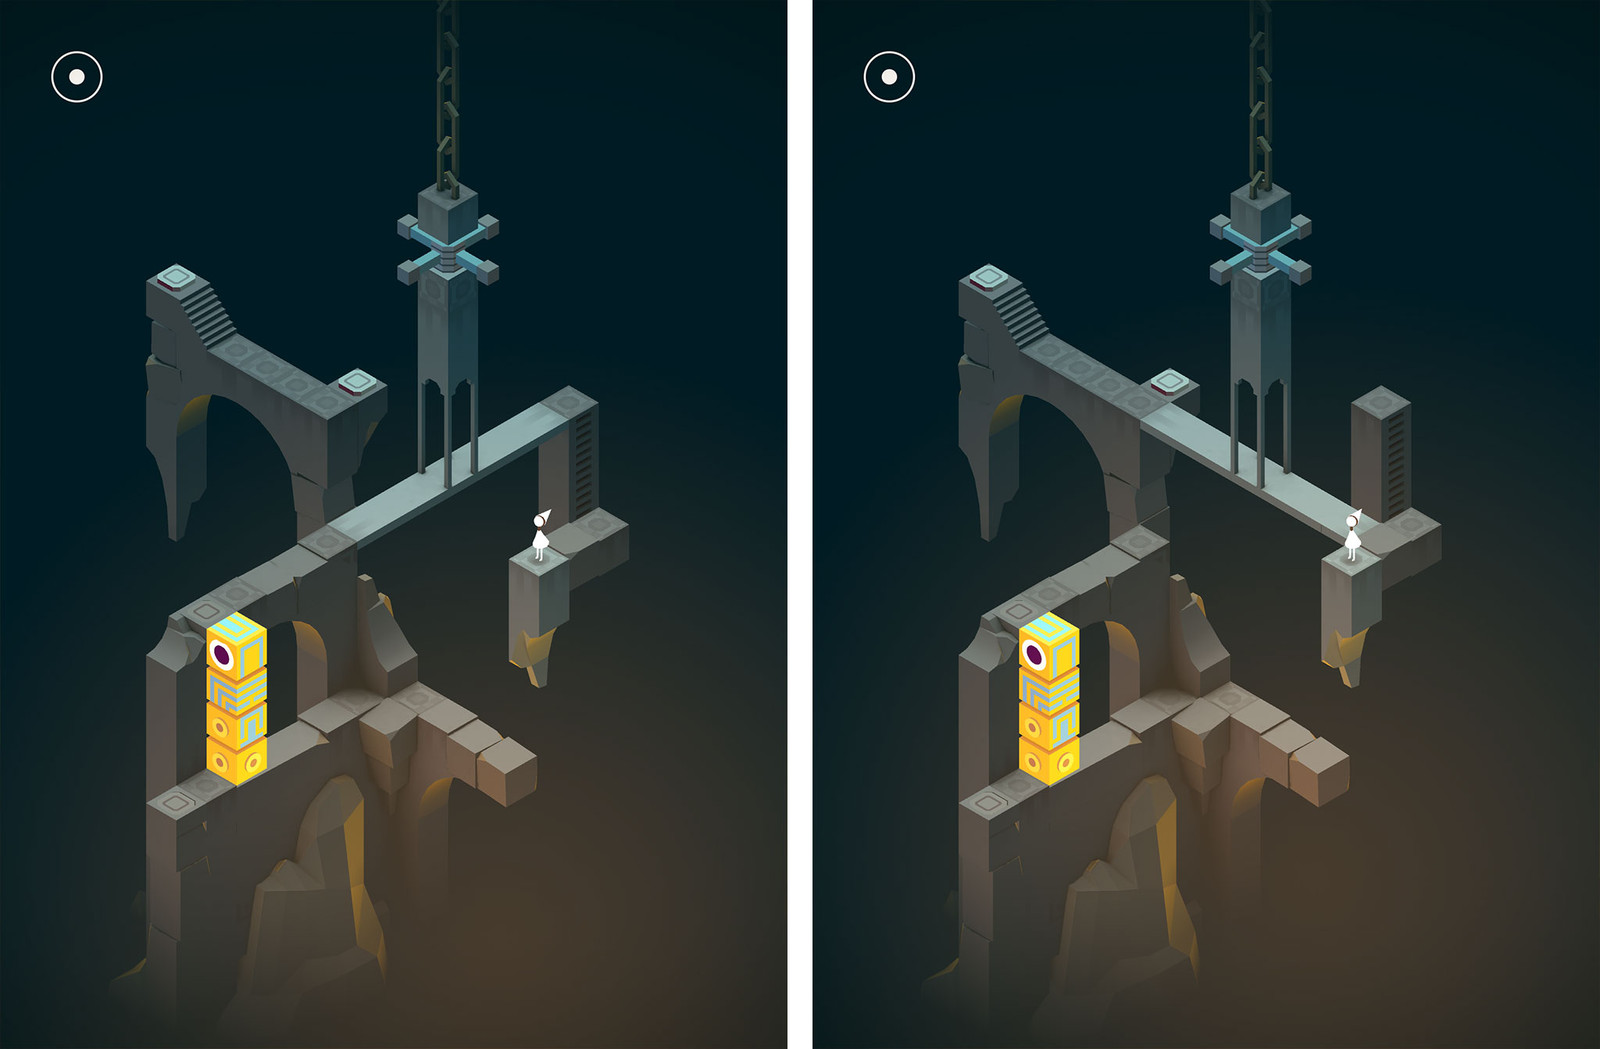 Monument Valley Forgotten Shores: Levels 1-4 walkthrough